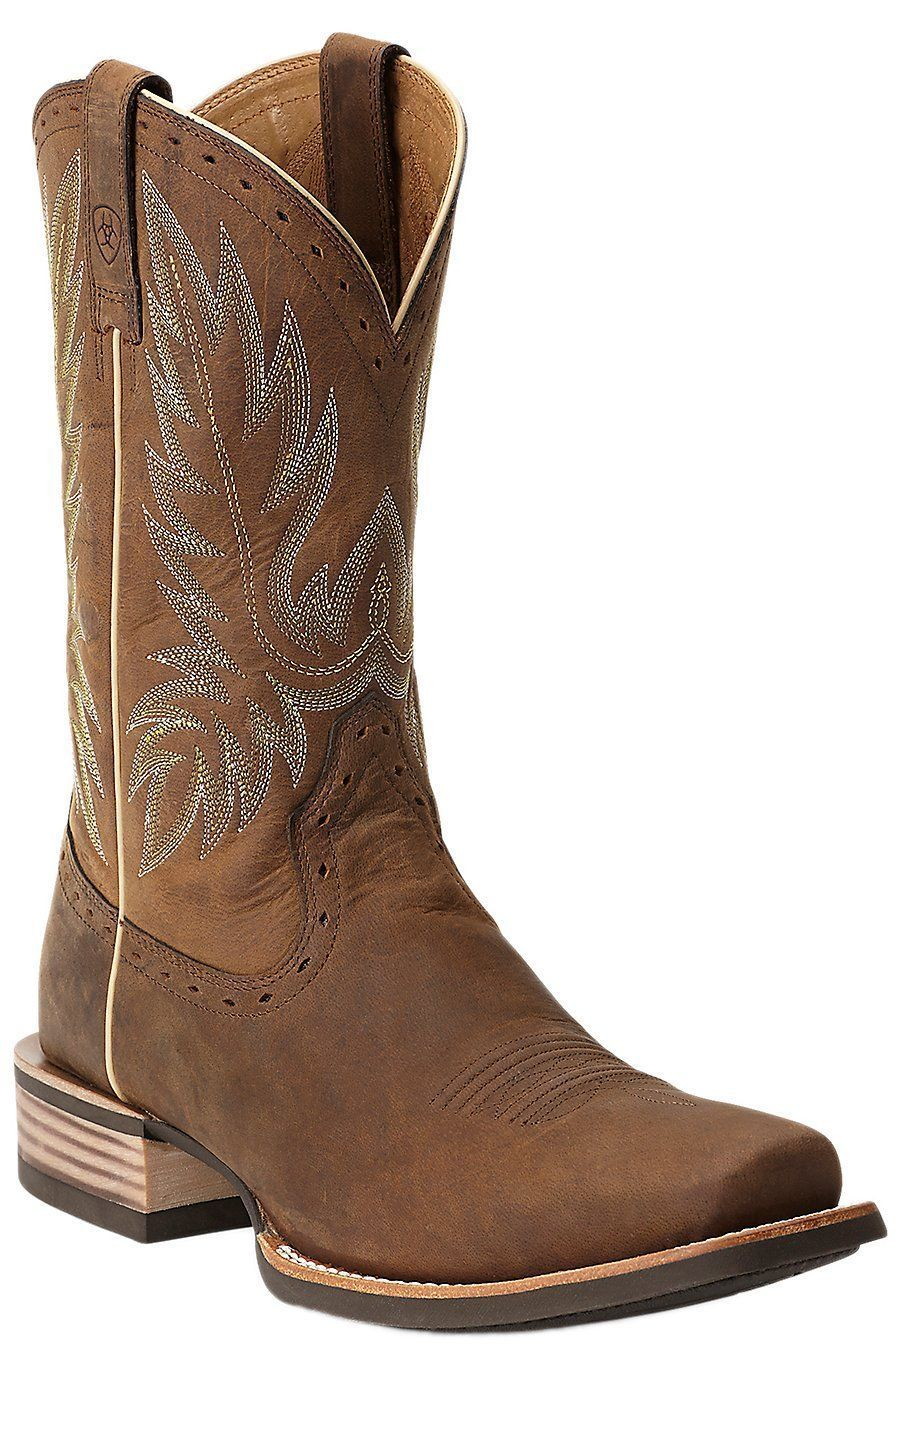 Rocky Mens Cowboy Boots Weathered Tan